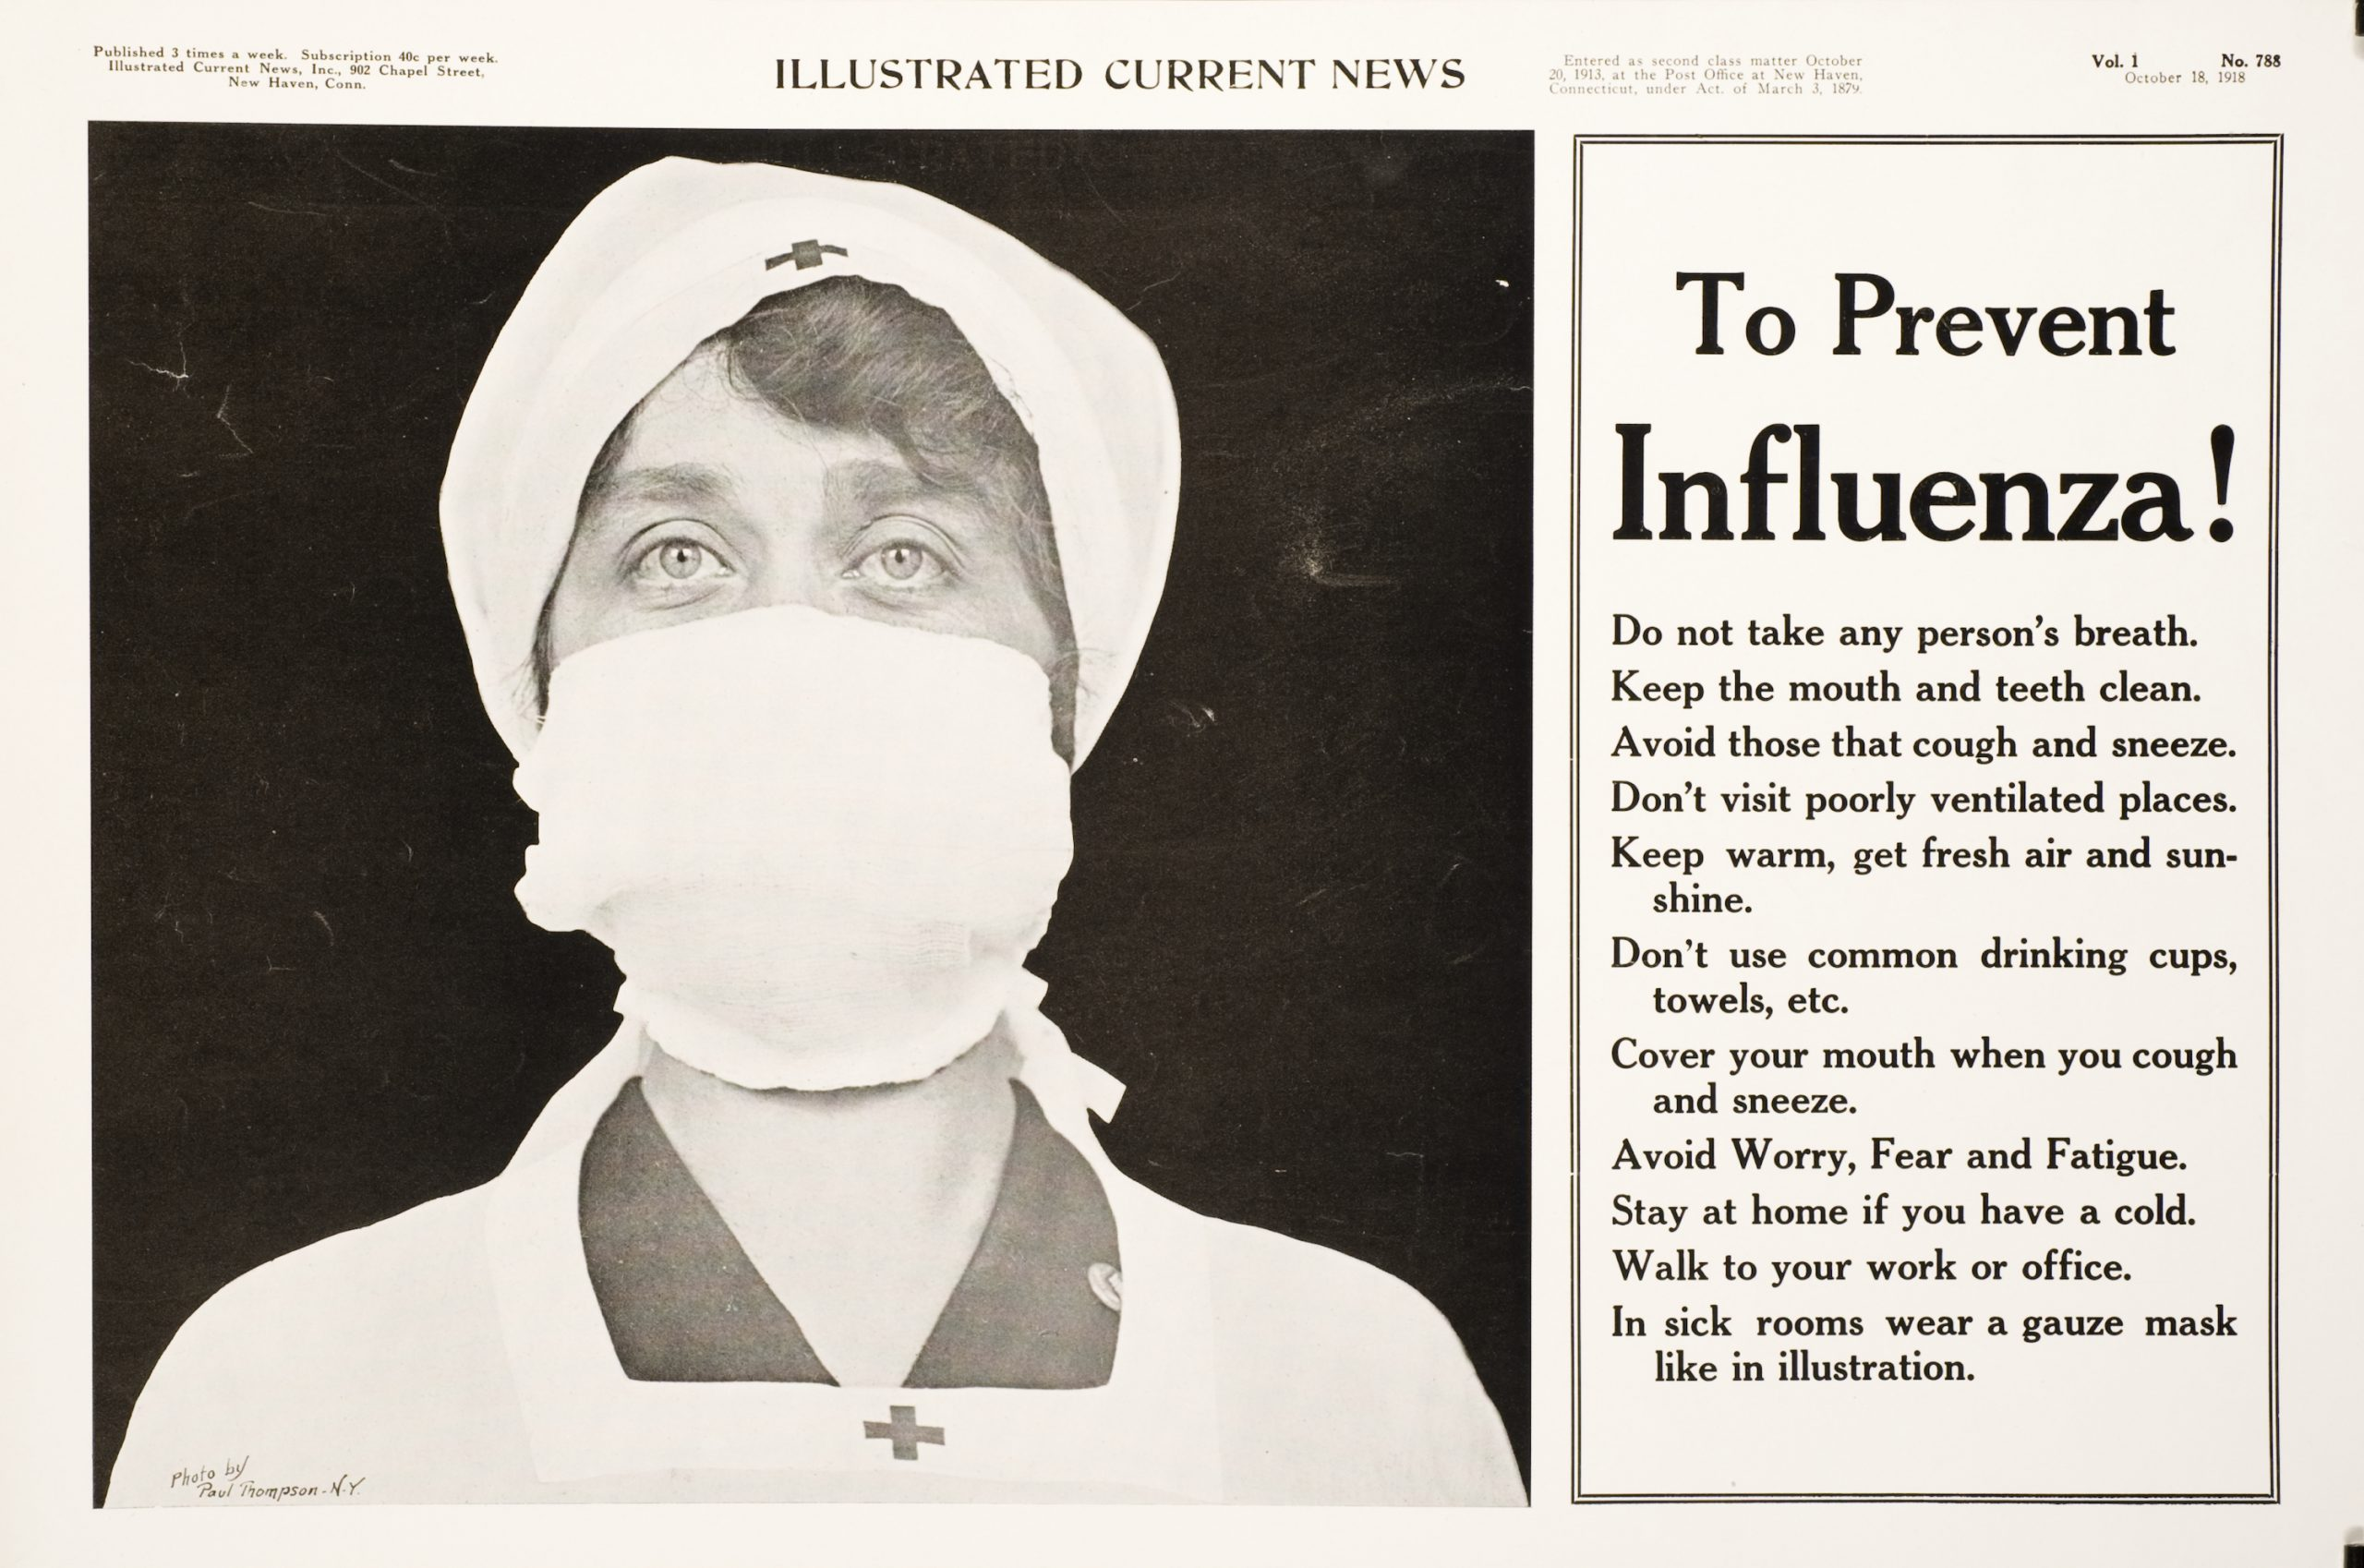 The 1918 flu pandemic and COVID-19: History does not repeat itself, but often rhymes